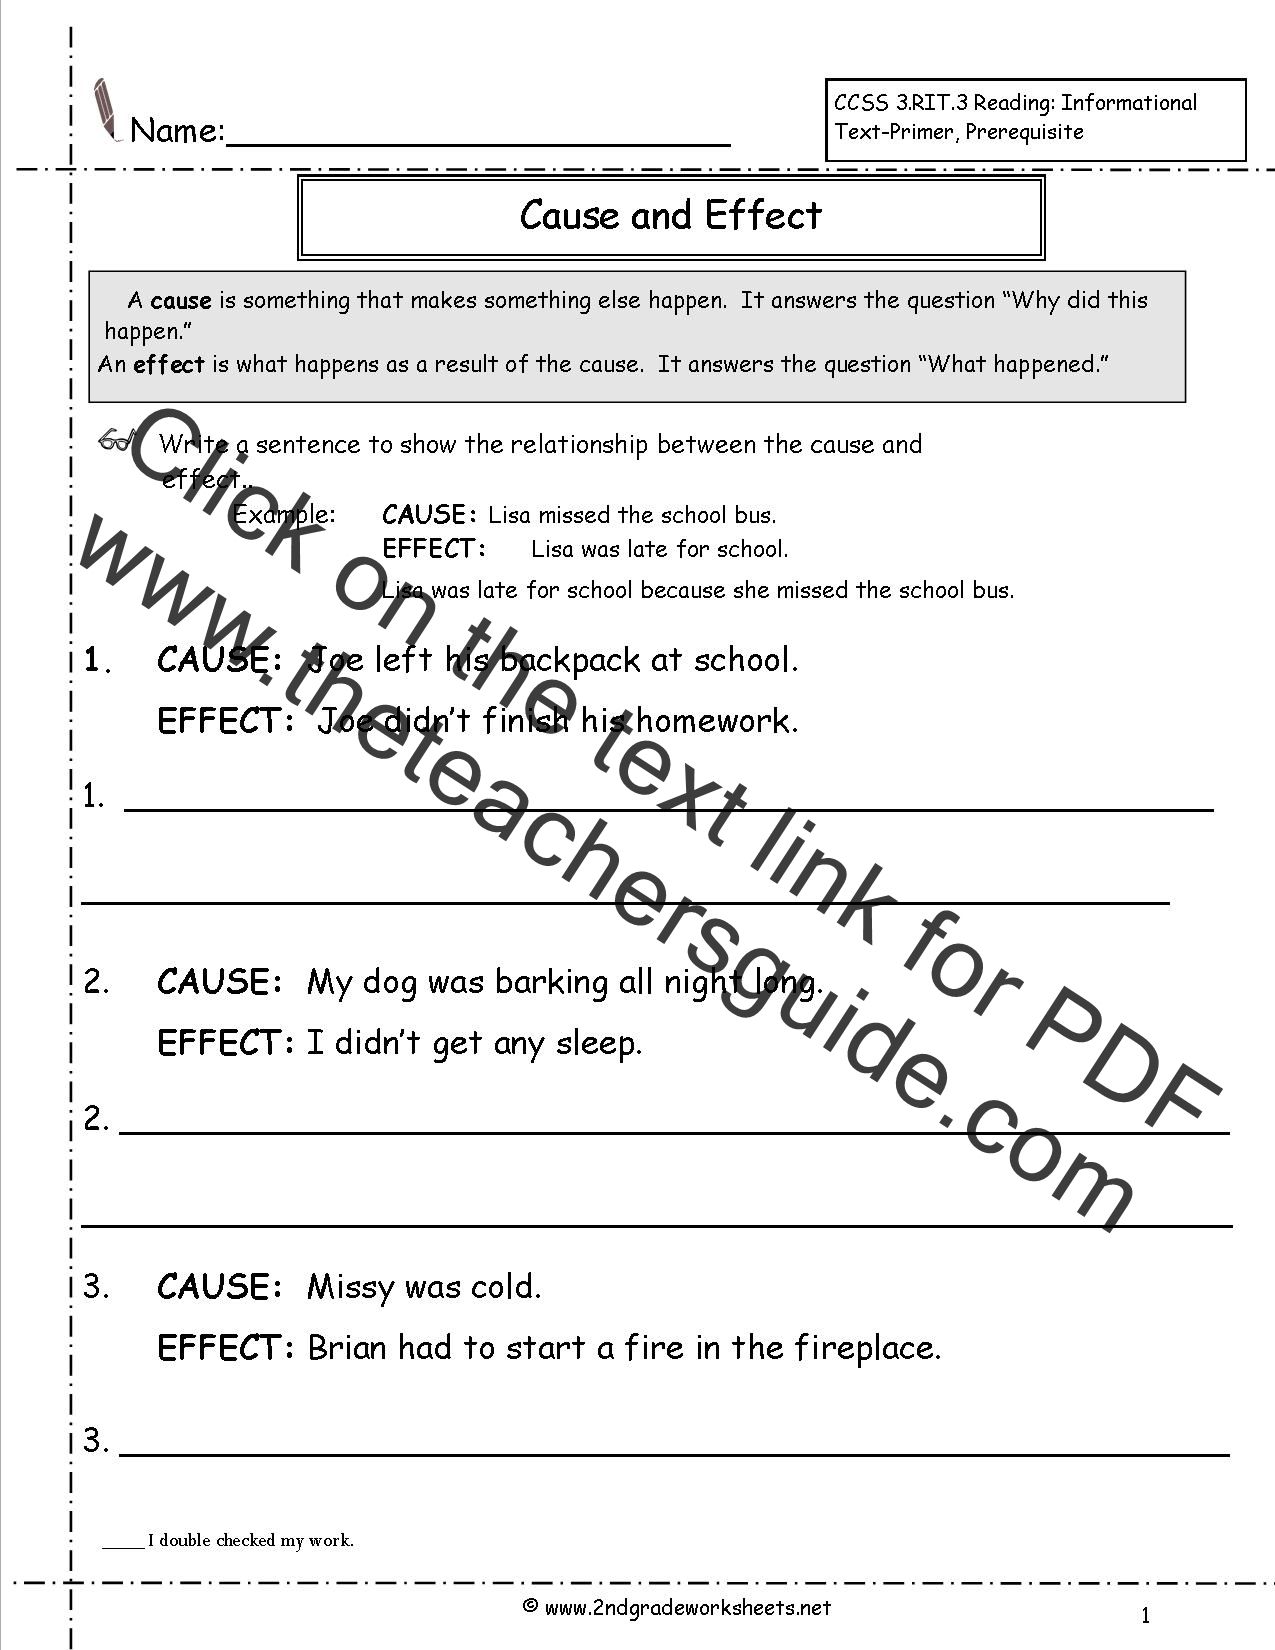 Worksheet 2nd Grade Comprehension reading worksheeets worksheets